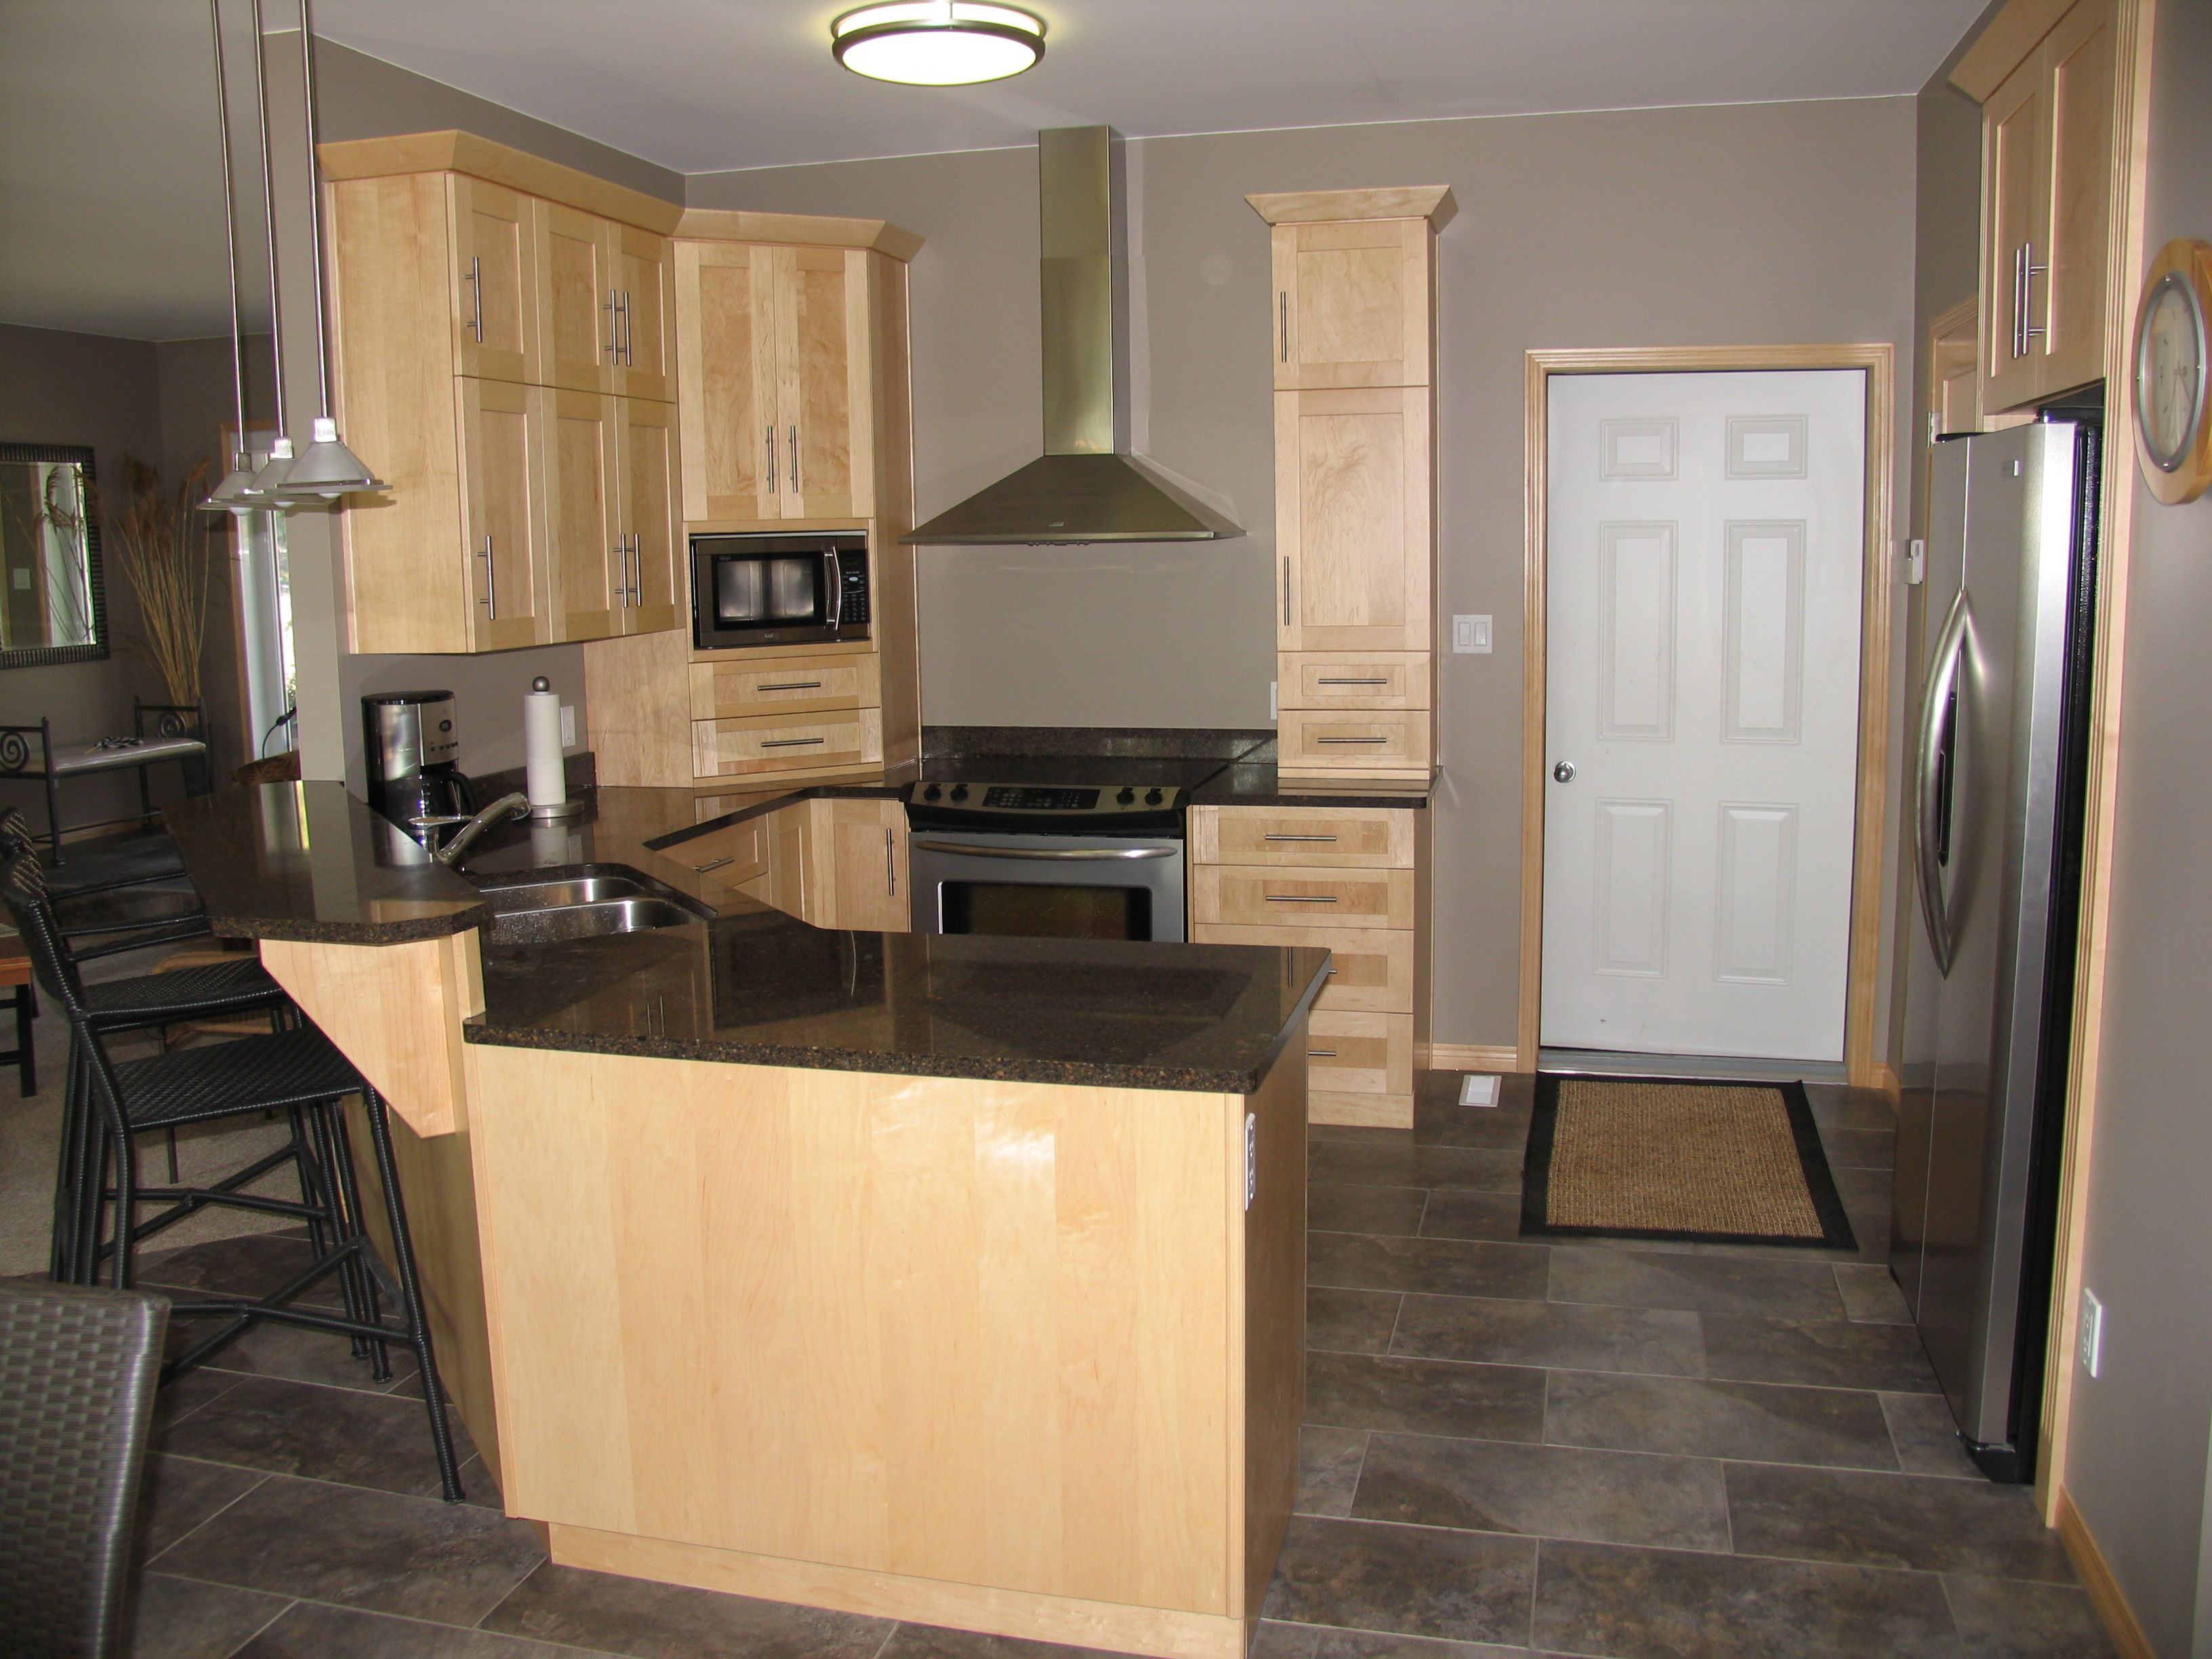 Cabinets: Maple - Natural / Countertops: Cambrian Quartz ... on Natural Maple Cabinets With Quartz Countertops  id=12553